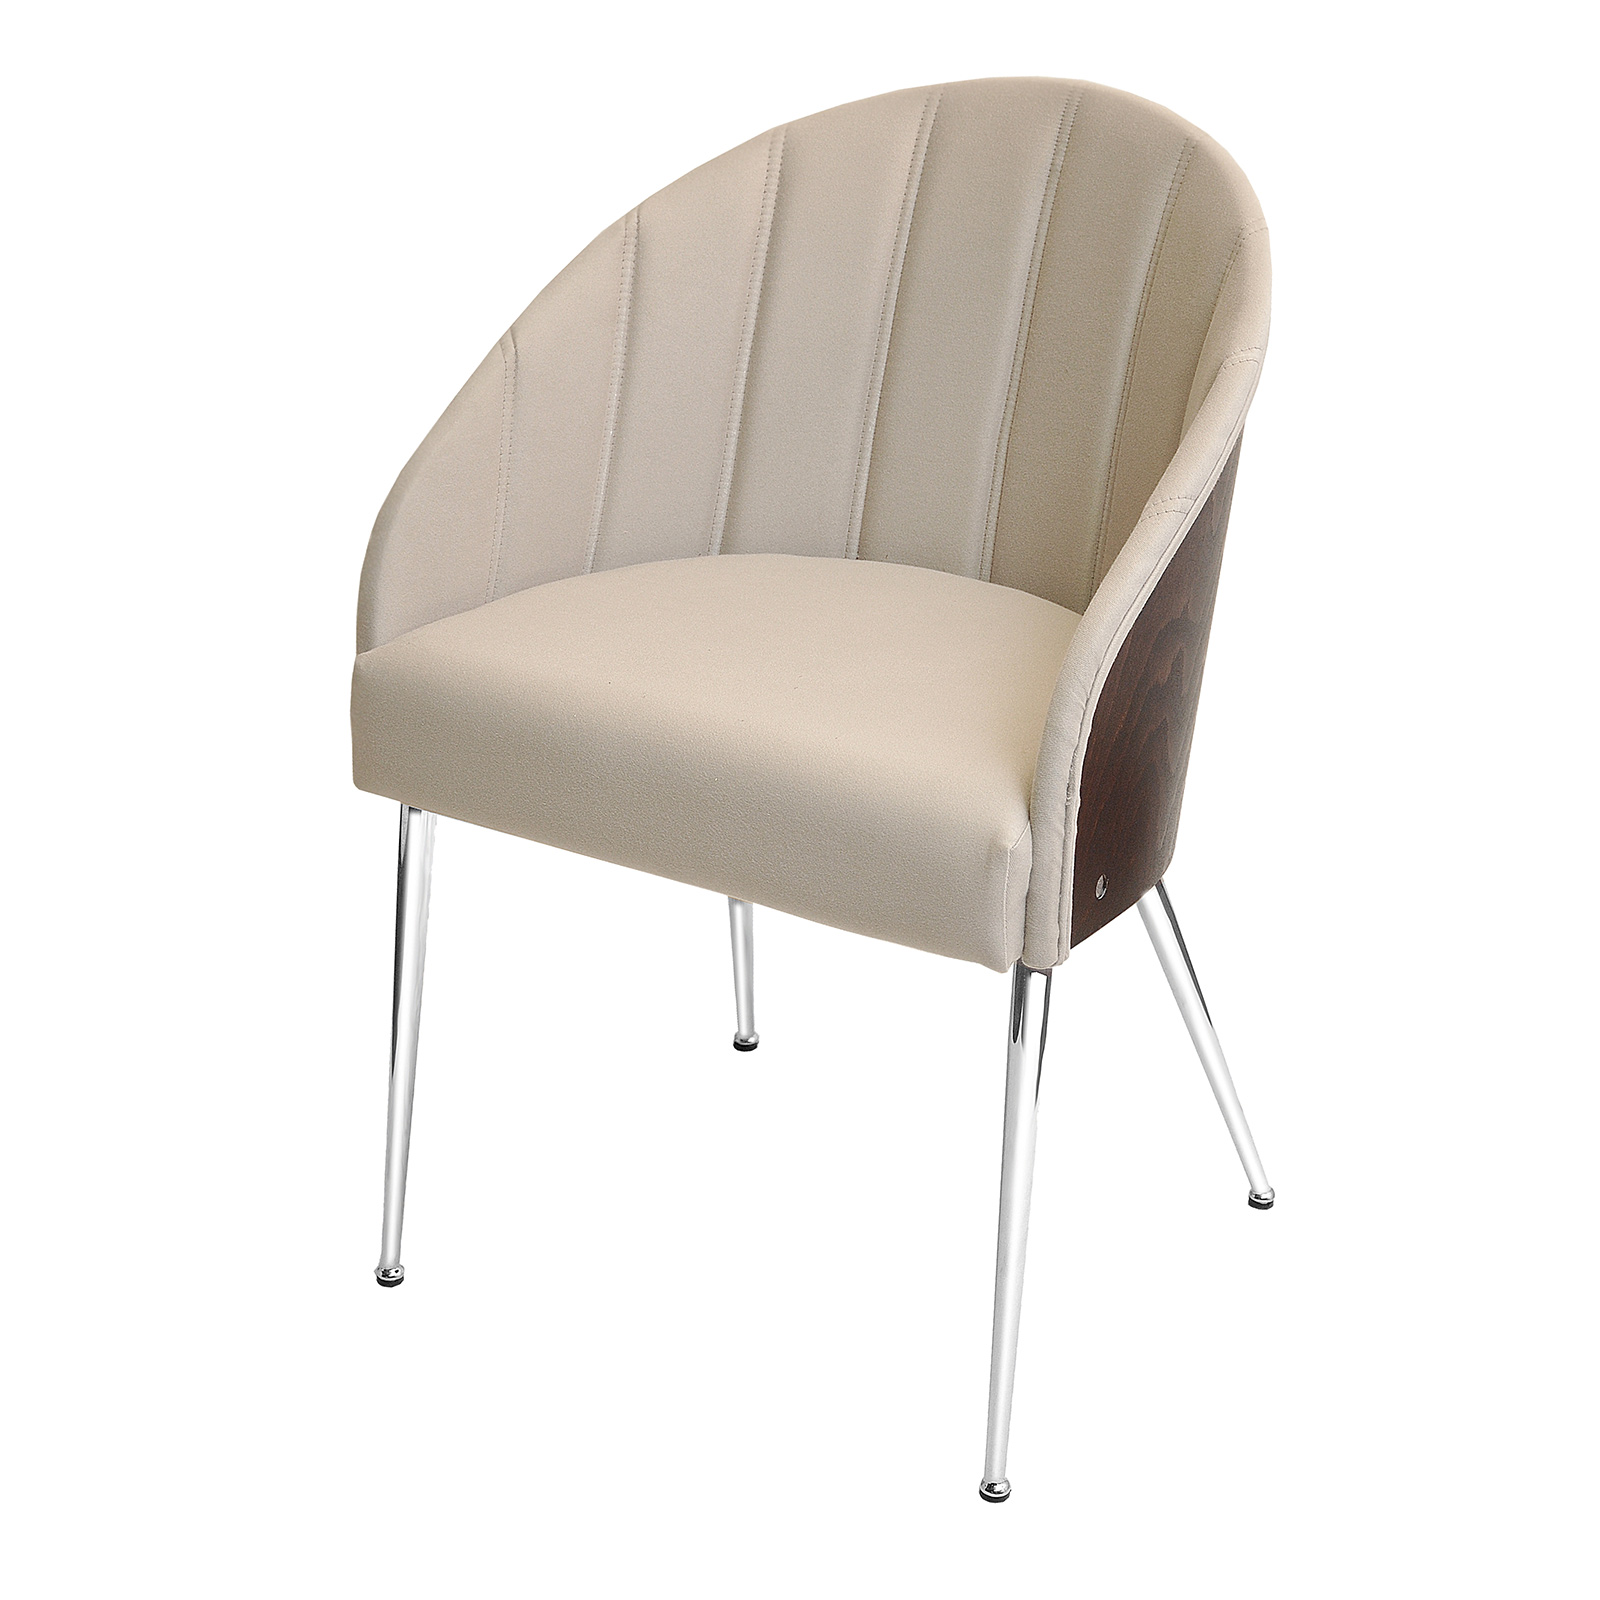 Florida Seating CN-EMILY DF GR7 chair, lounge, indoor